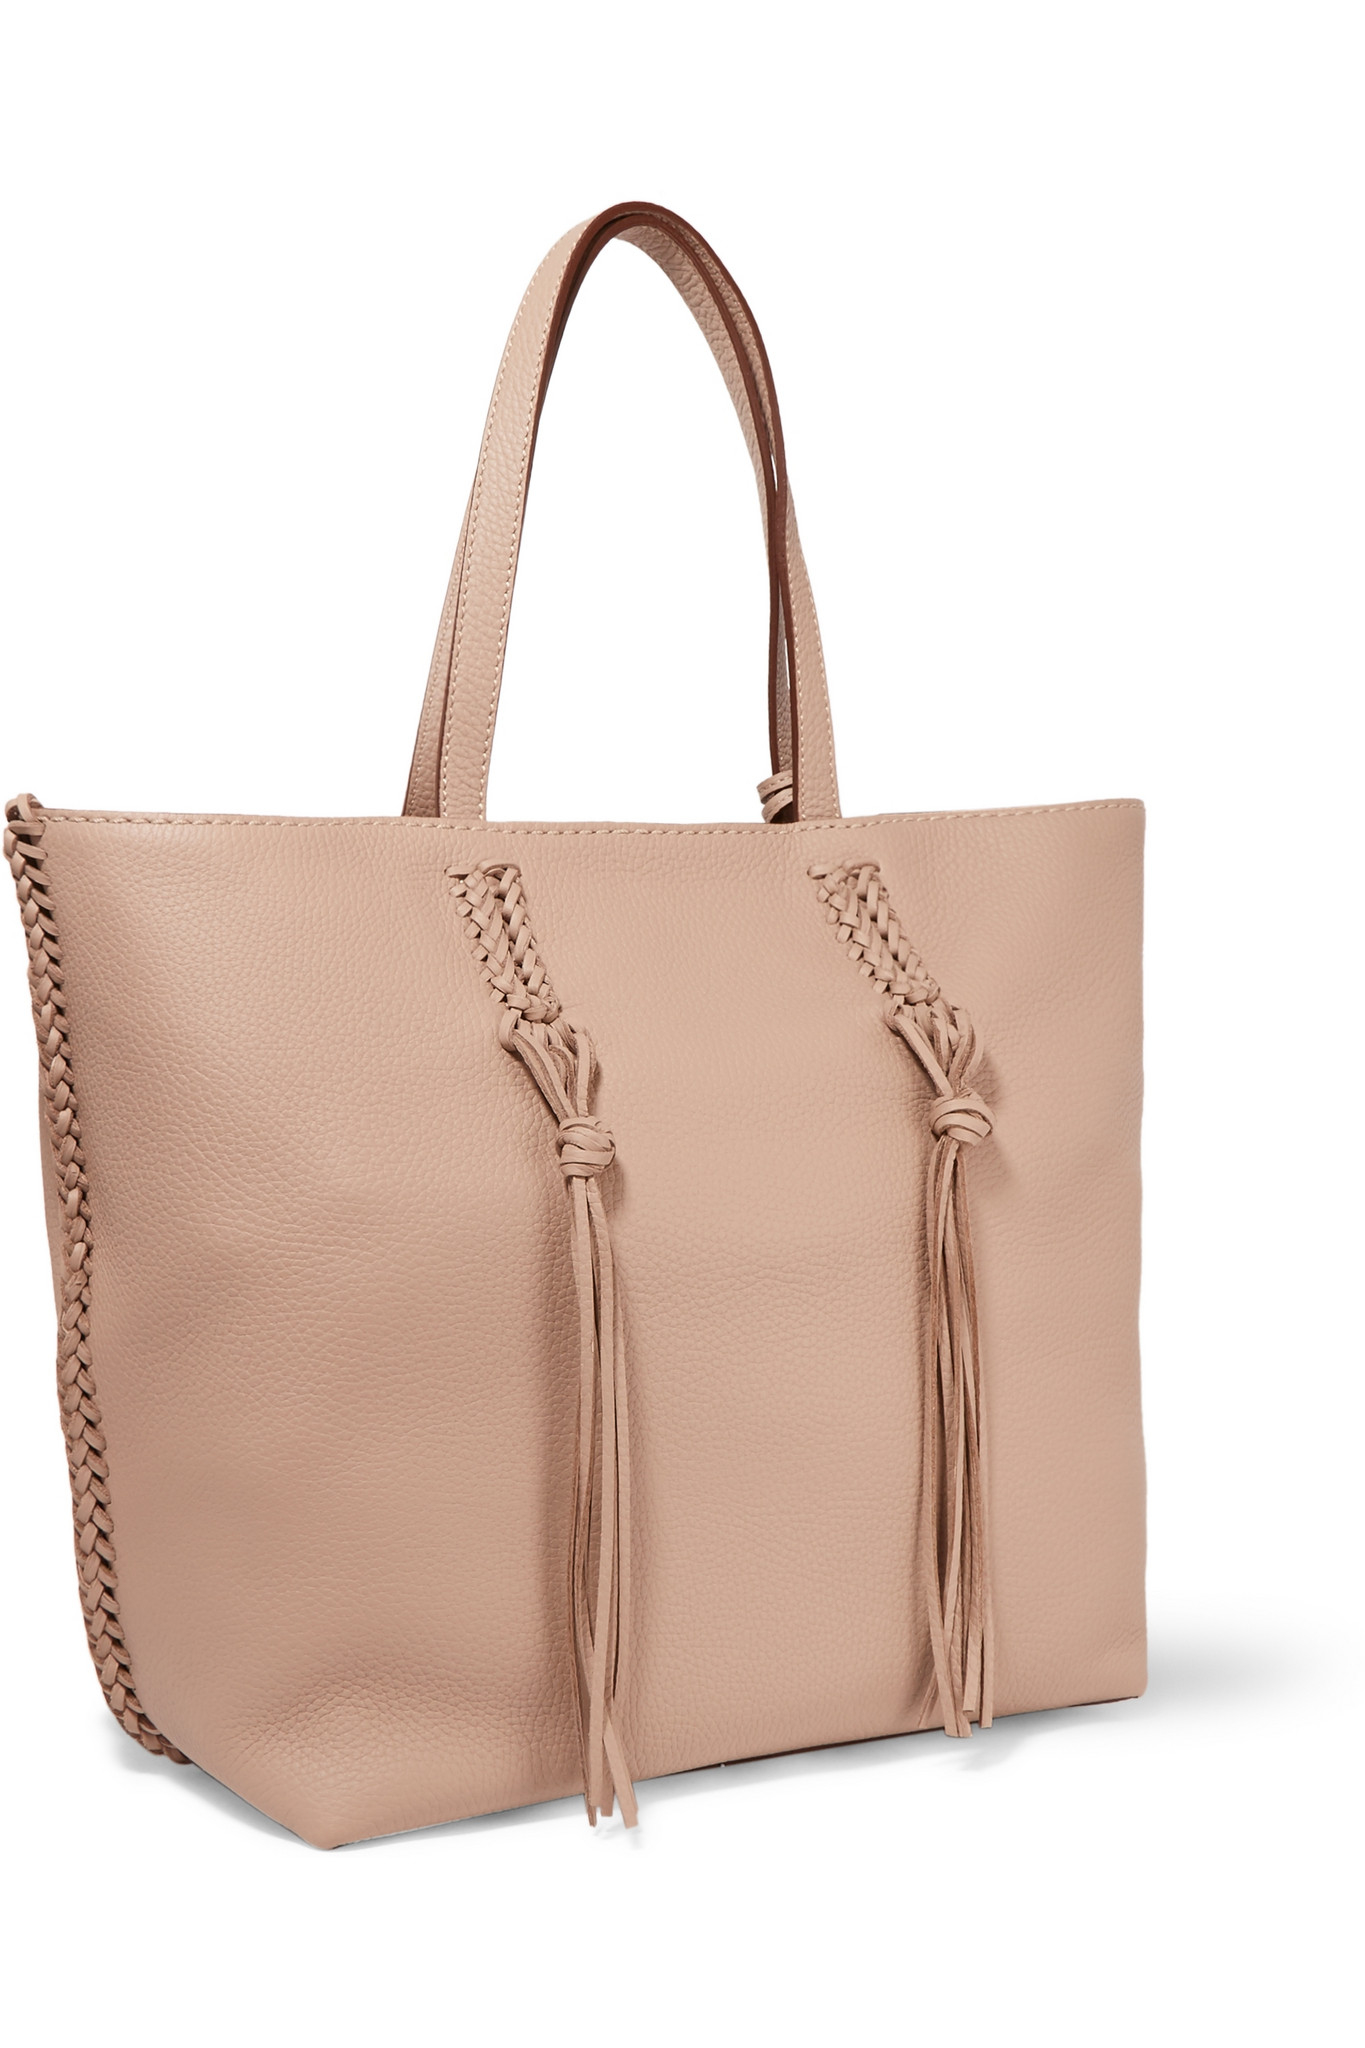 1cb542562d Tod's Gypsy Medium Textured-leather Tote in Natural - Lyst